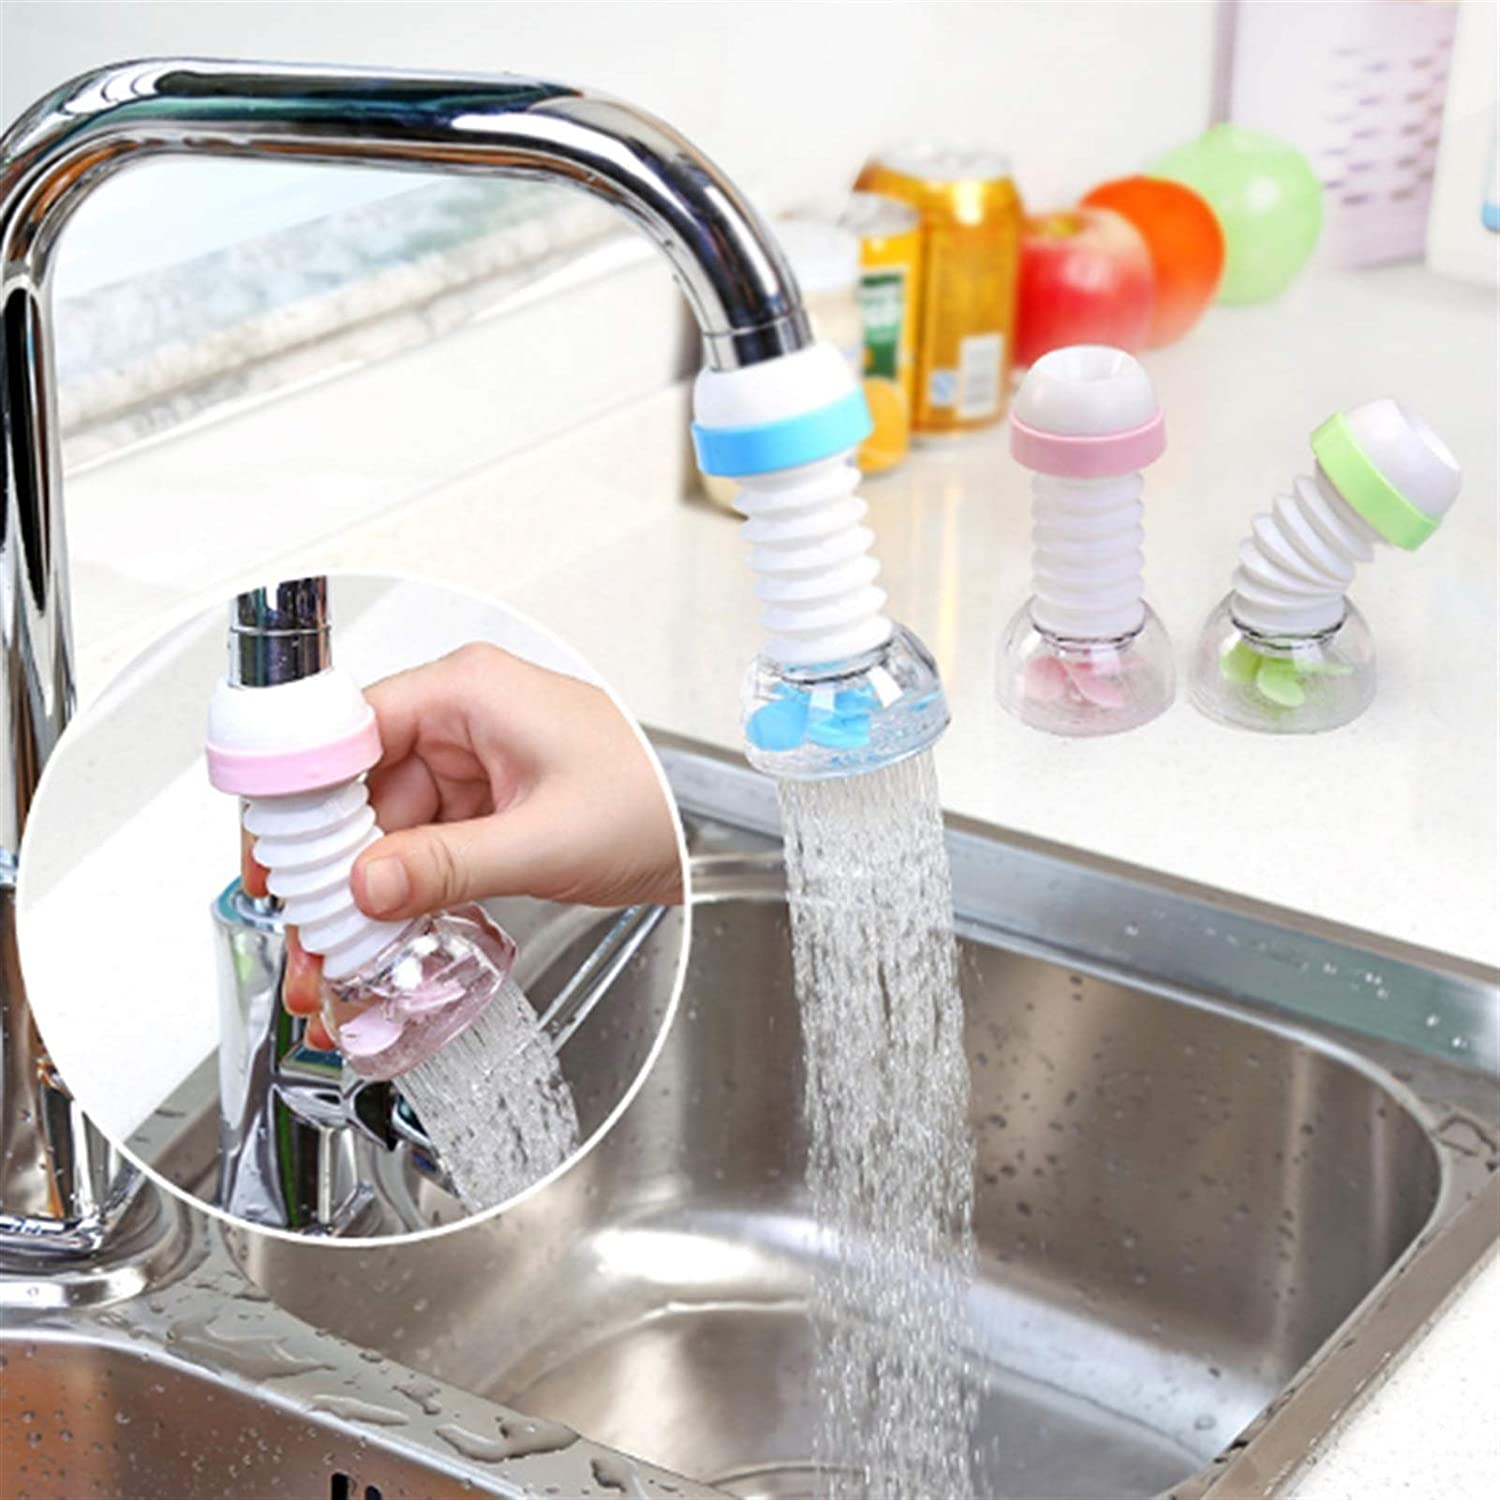 Color : Blue ZHENGYAQI-PHONE CASE Rotatable Adjustable Kitchen Faucet Extender Water Saving Tap Nozzle Faucet Connector 360 Degree Adjustable Shower Accessories